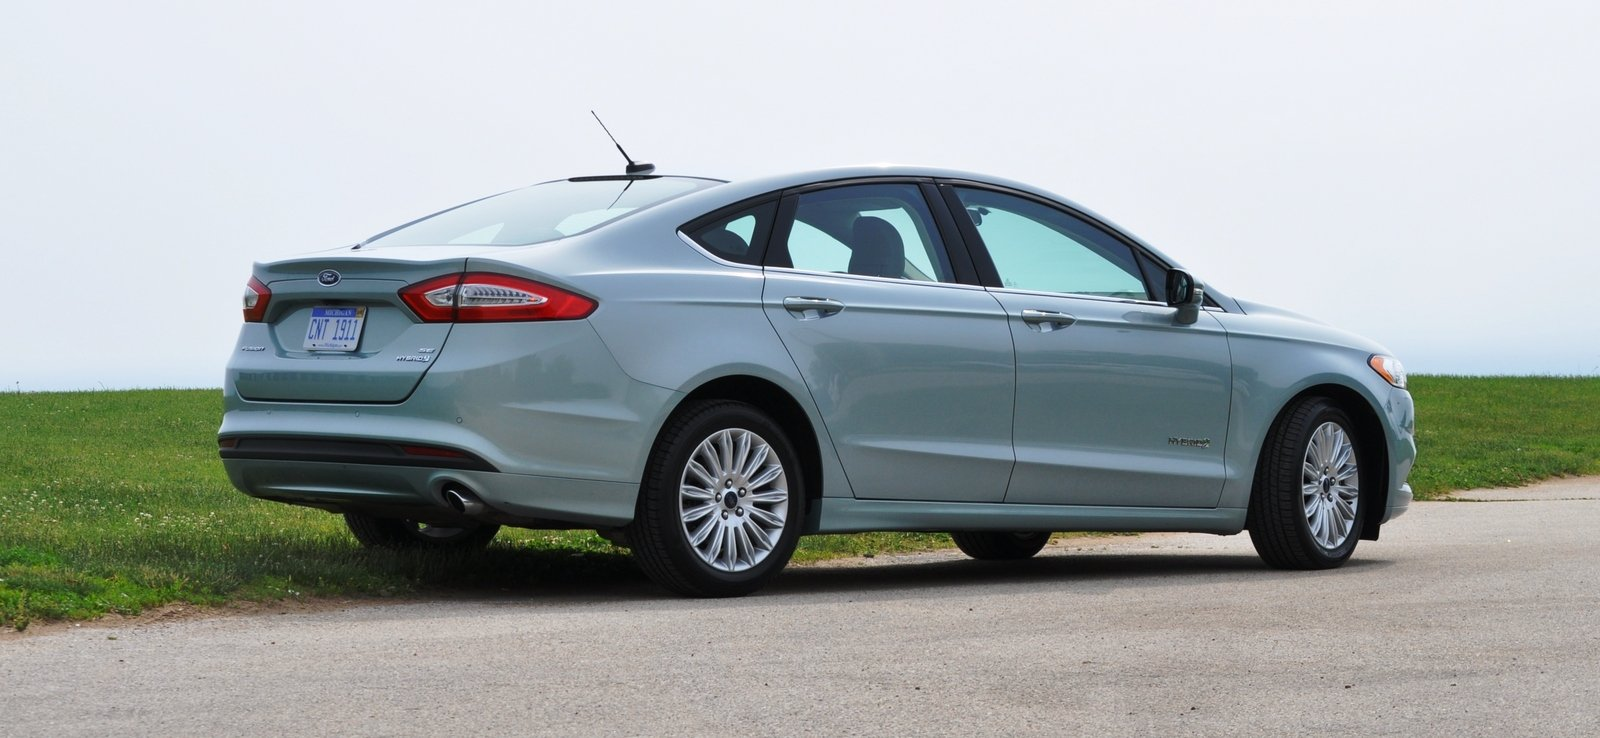 2014 ford fusion energi picture 513049 car review top speed. Black Bedroom Furniture Sets. Home Design Ideas